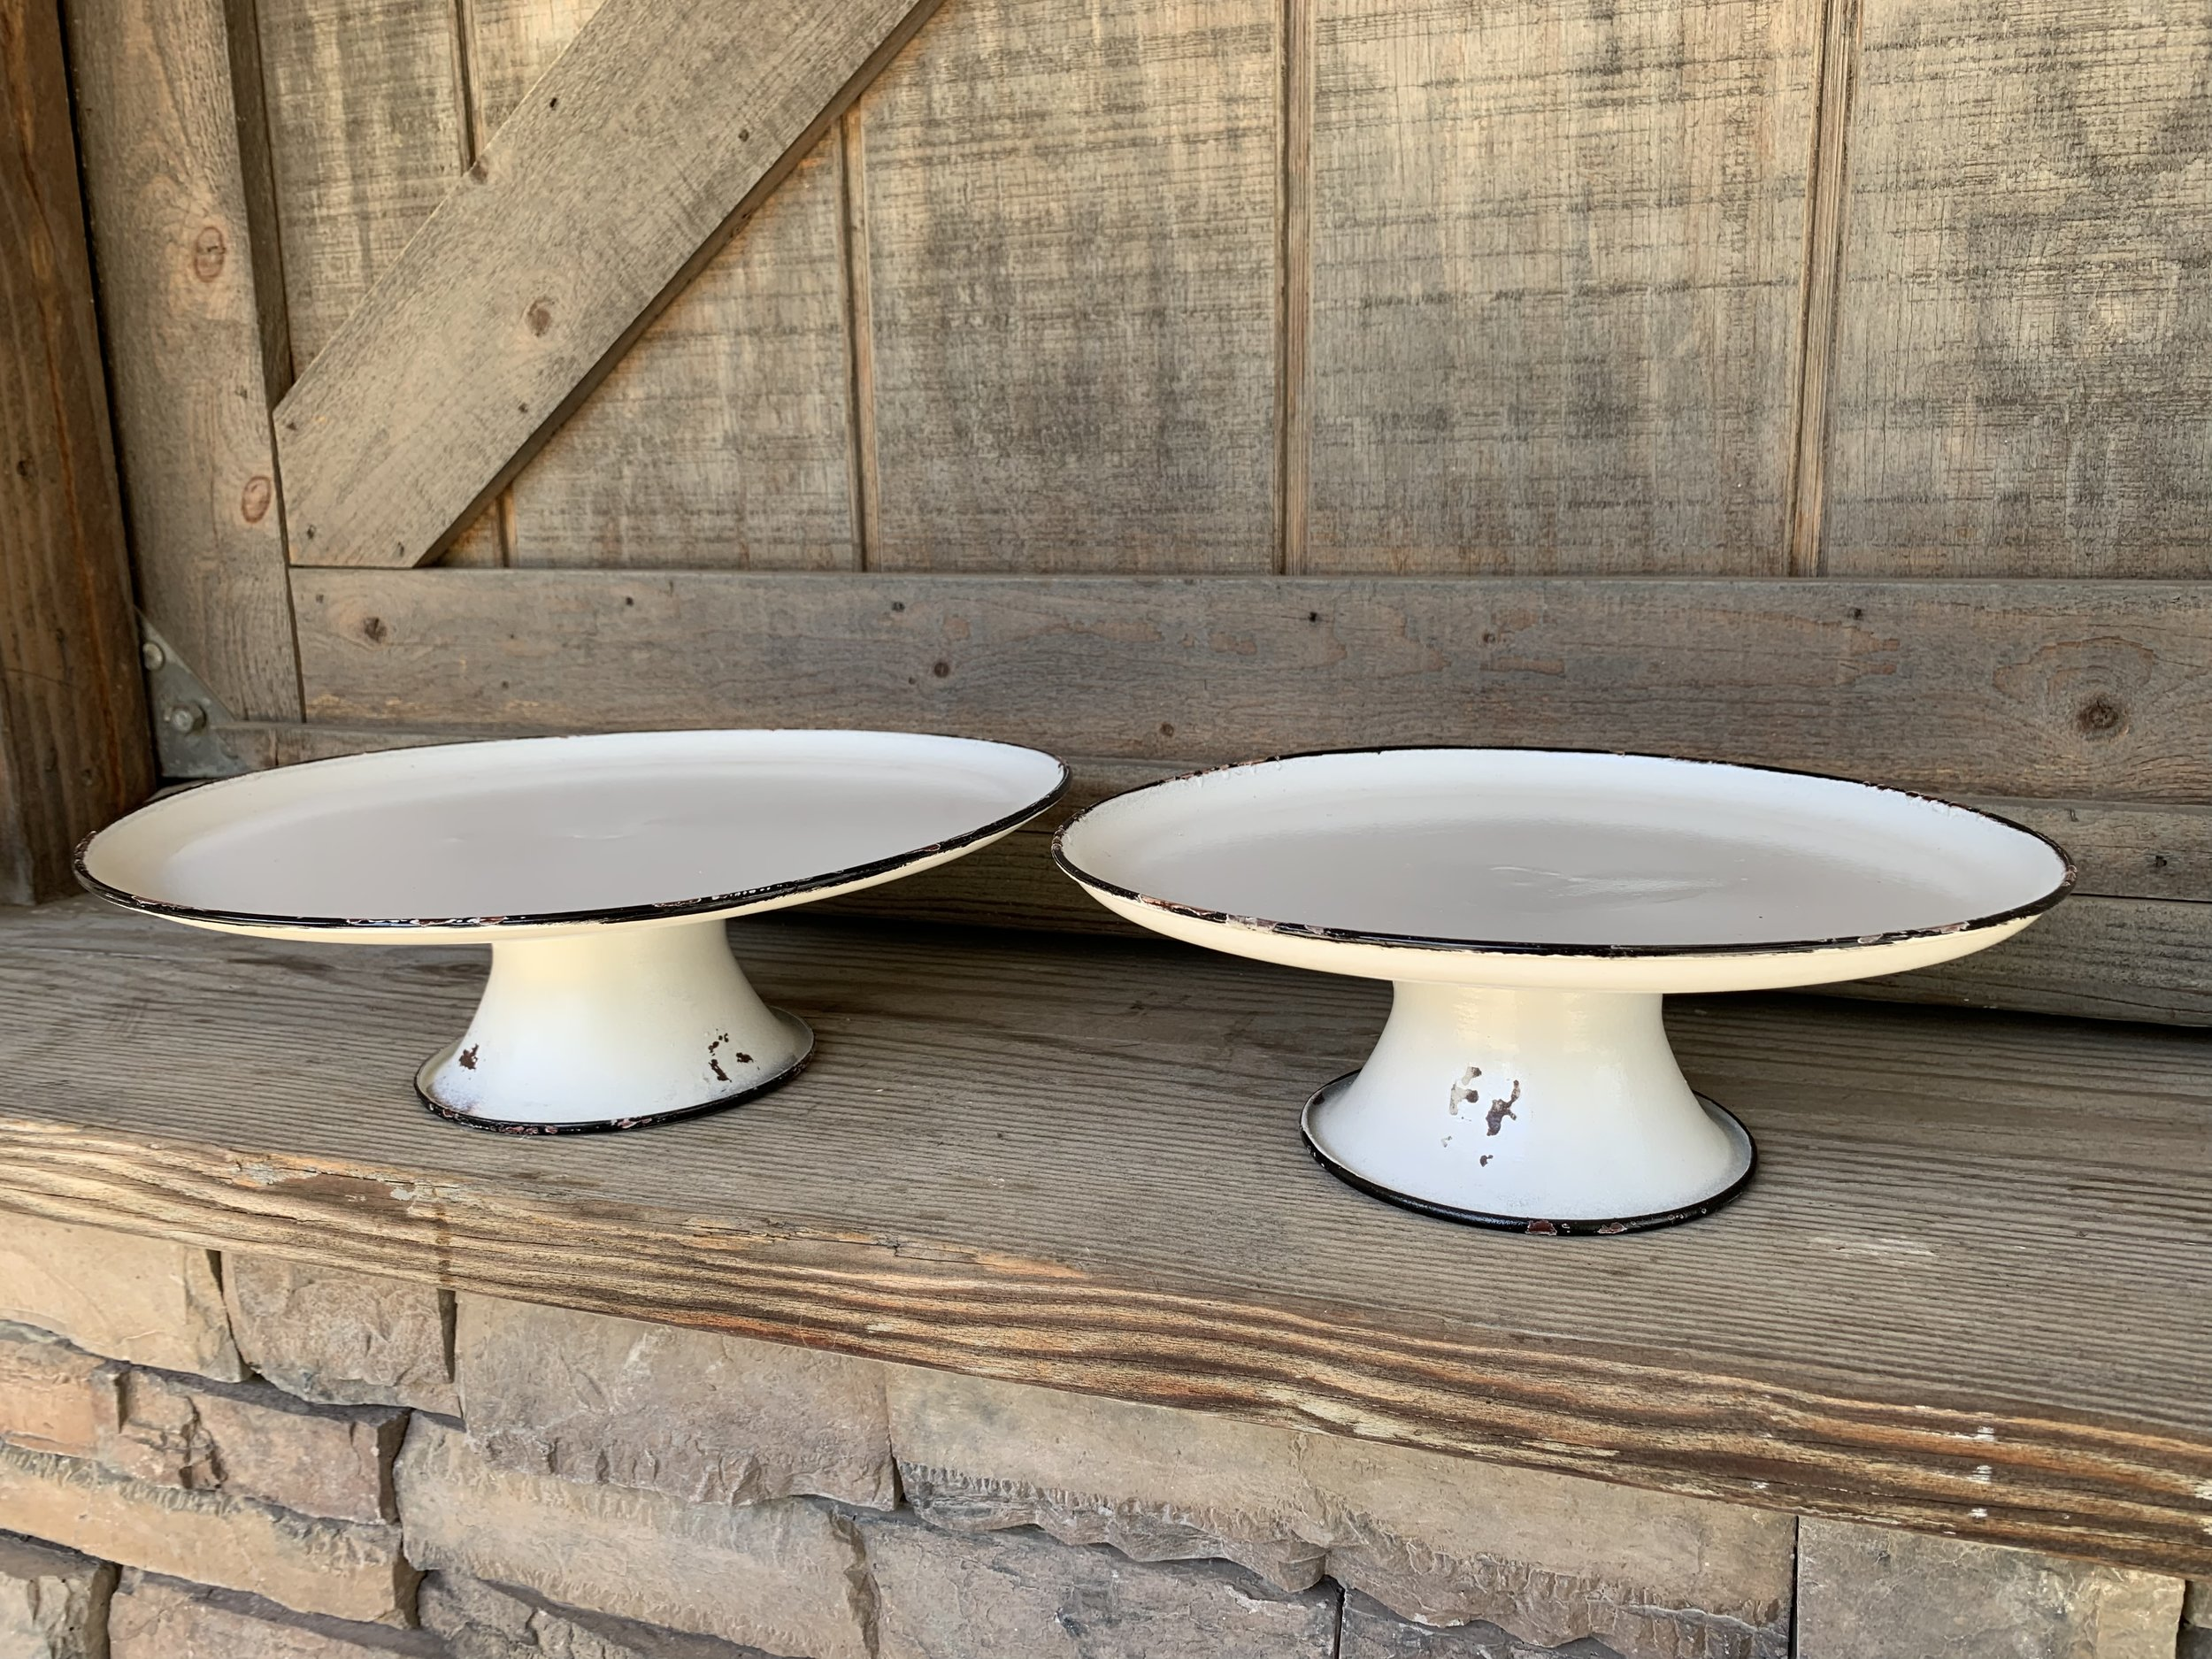 Enamelware Cake Stands - $25 and $30